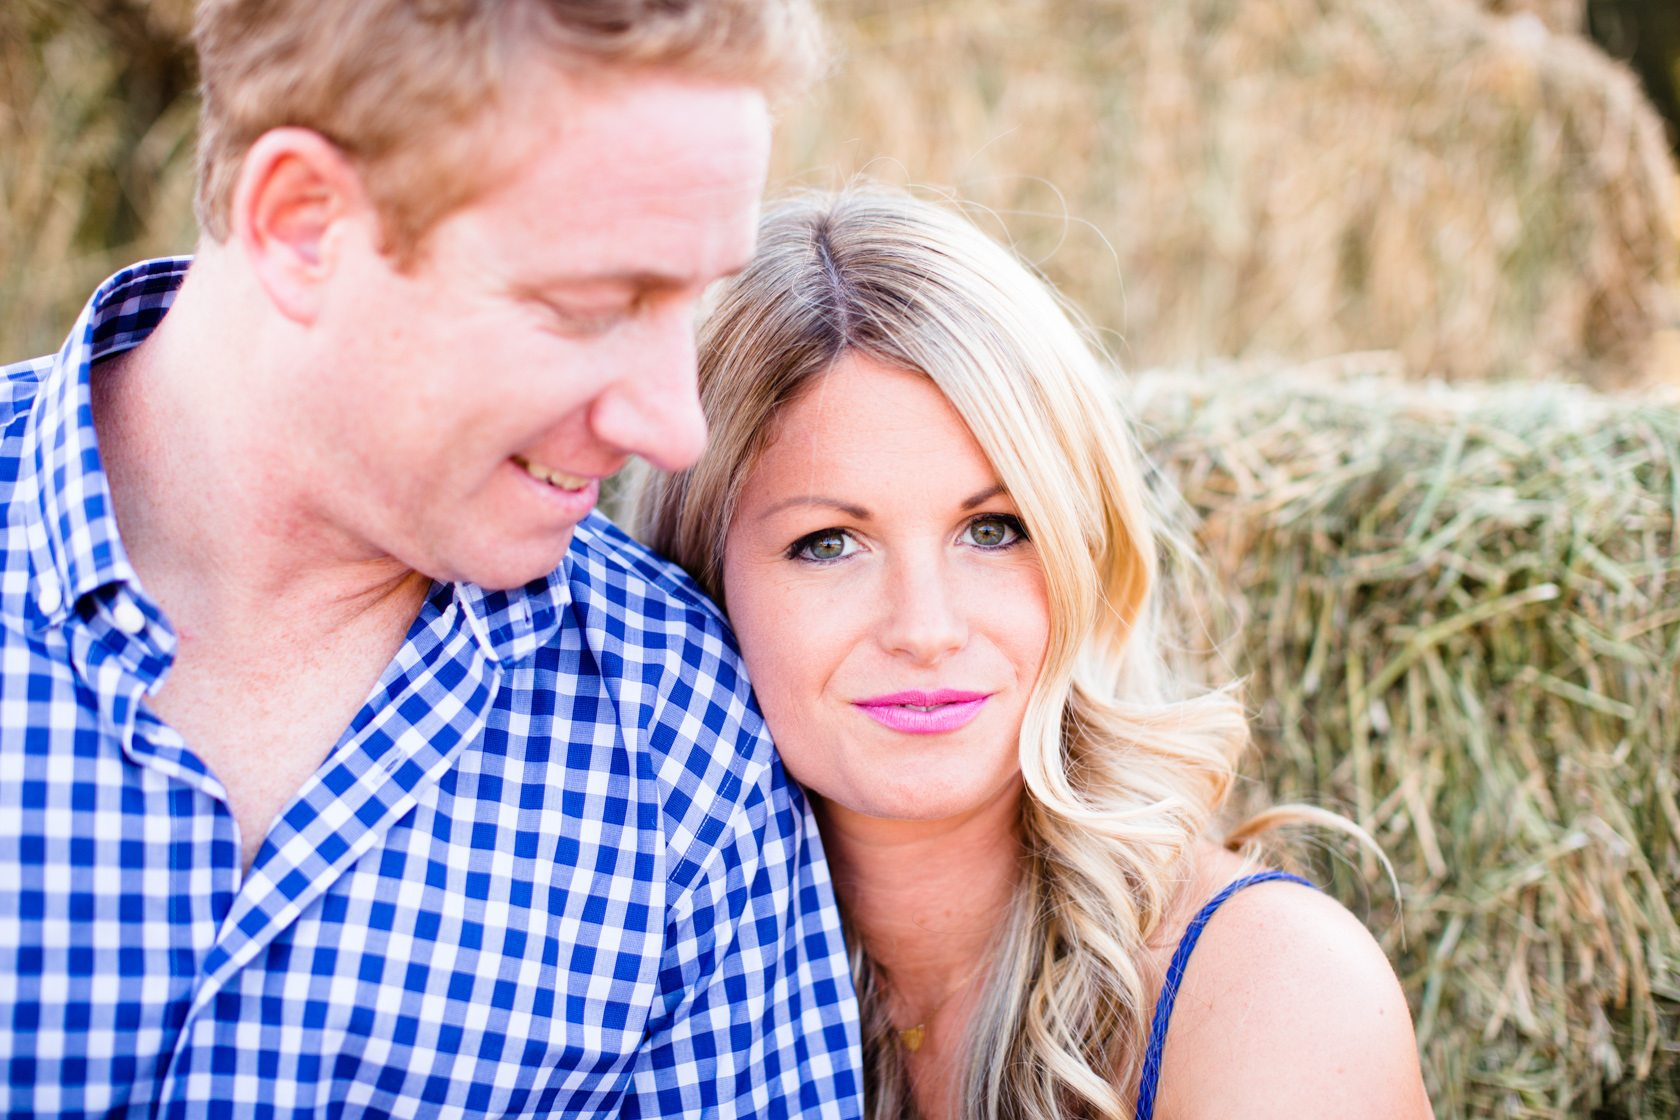 Julian_Farm_Engagement_11.jpg